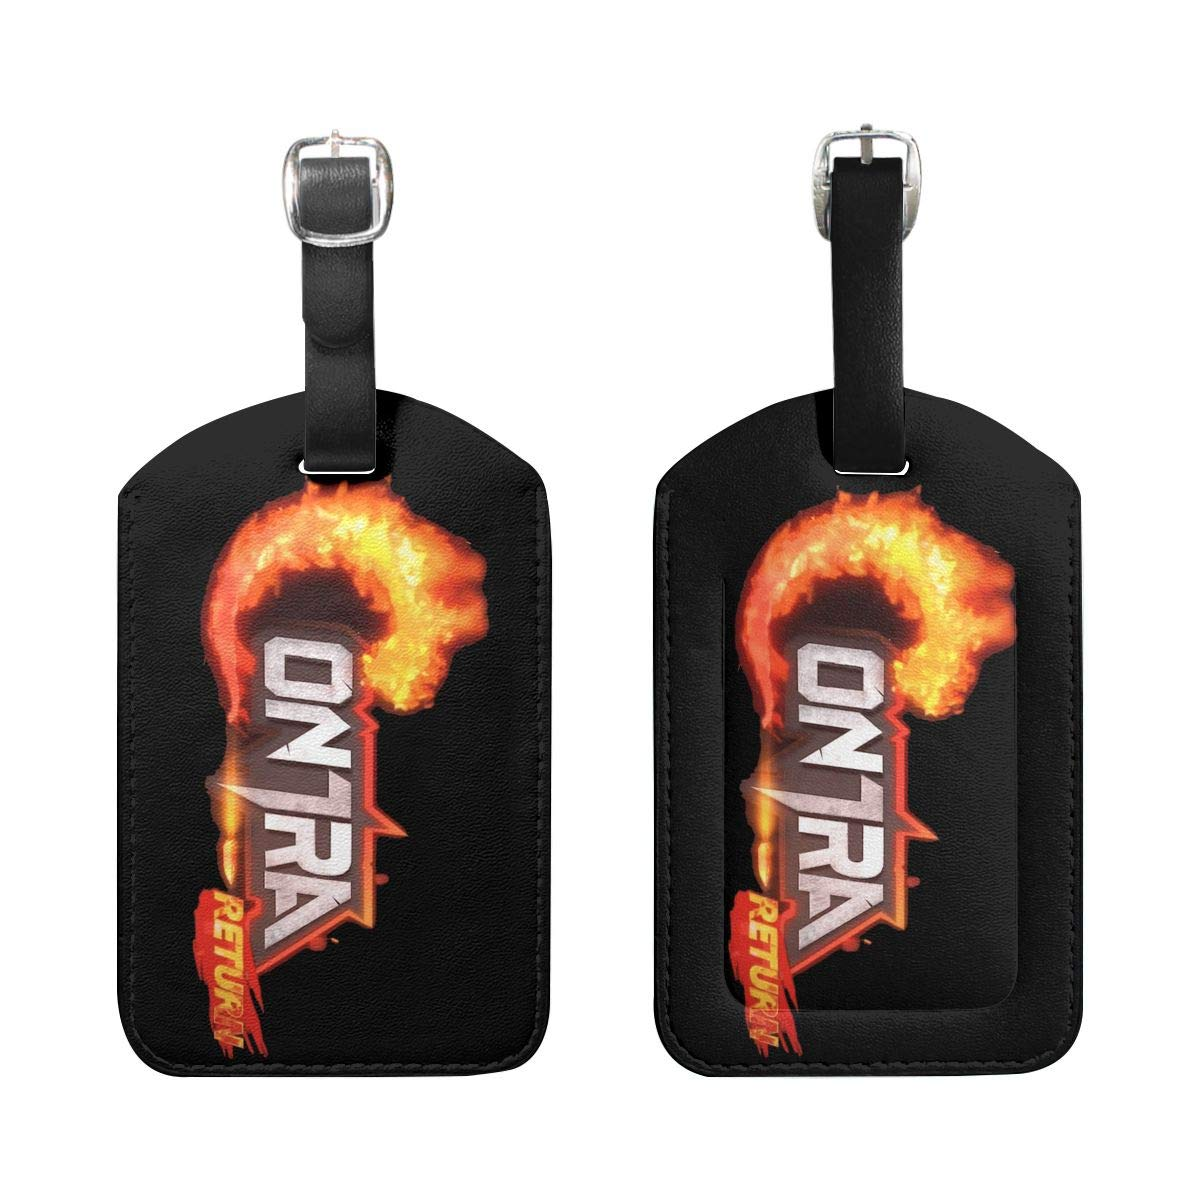 Liuchuan Contra Logo PU Leather Luggage Tags Suitcase Labels Bag Travel Accessories Set of 2